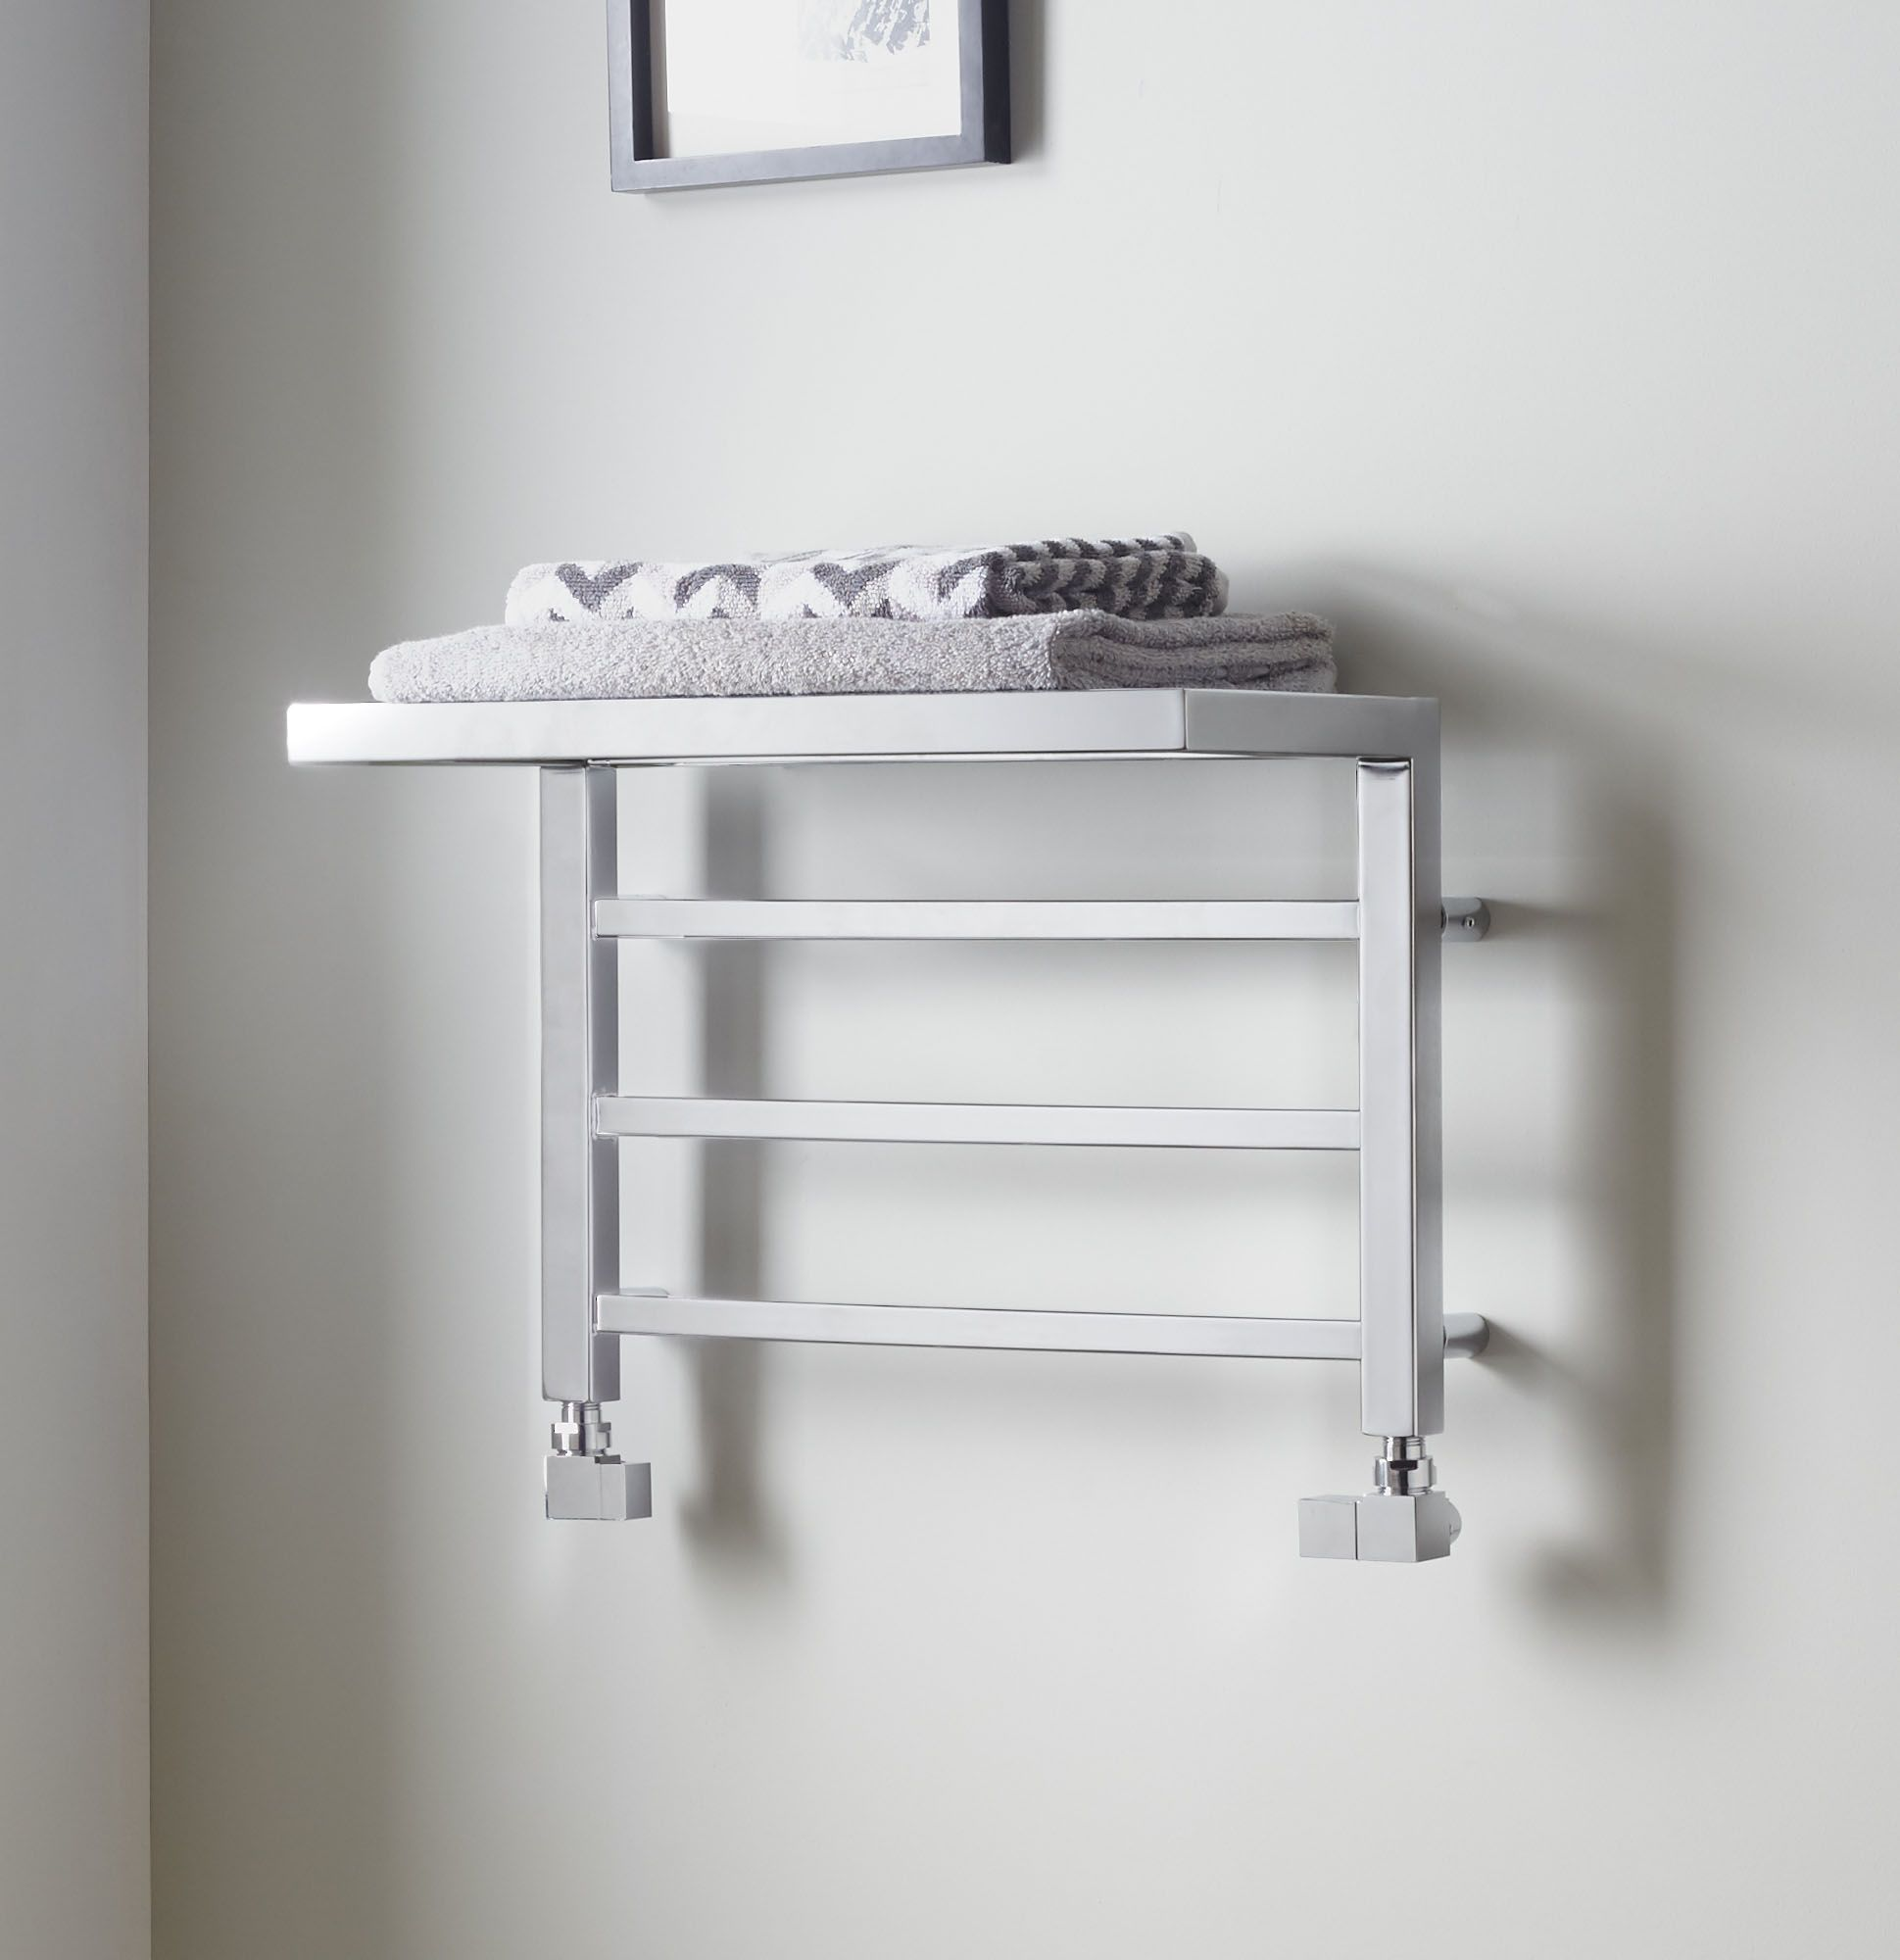 The Towelrads Holyport towel rail is the